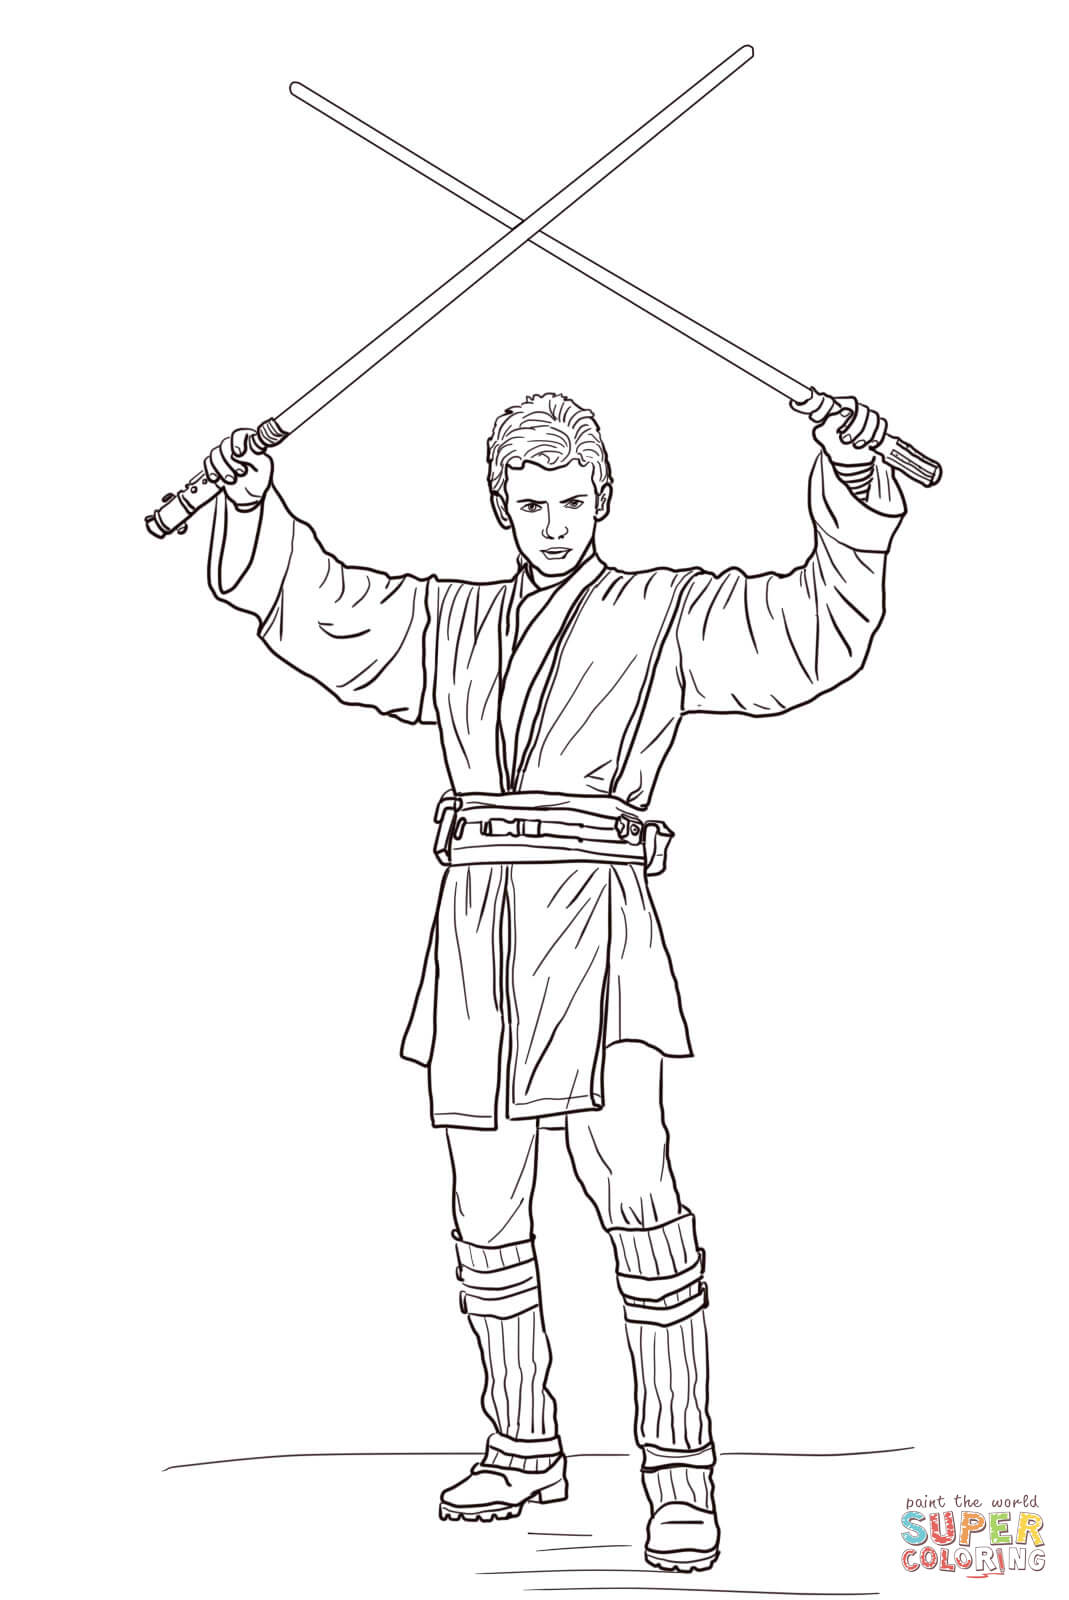 Adult Best Luke Skywalker Coloring Page Gallery Images top luke skywalker printable coloring pages az anakin with two lightsabers page free images